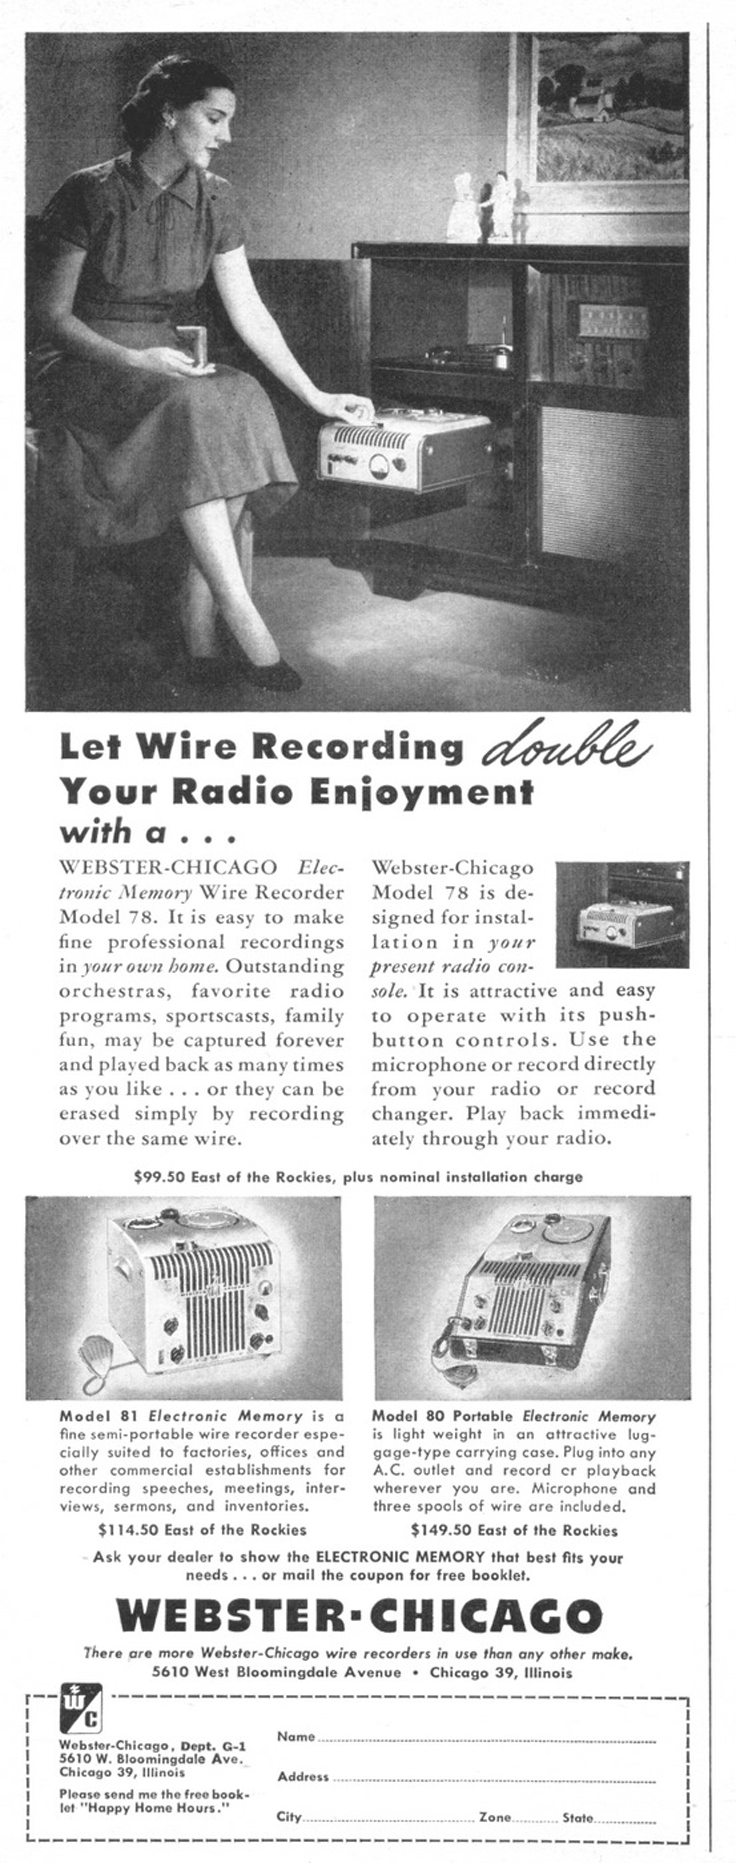 1948 Webster wire 78 ad in   Reel2ReelTexas.com's vintage reel tape recorder collection